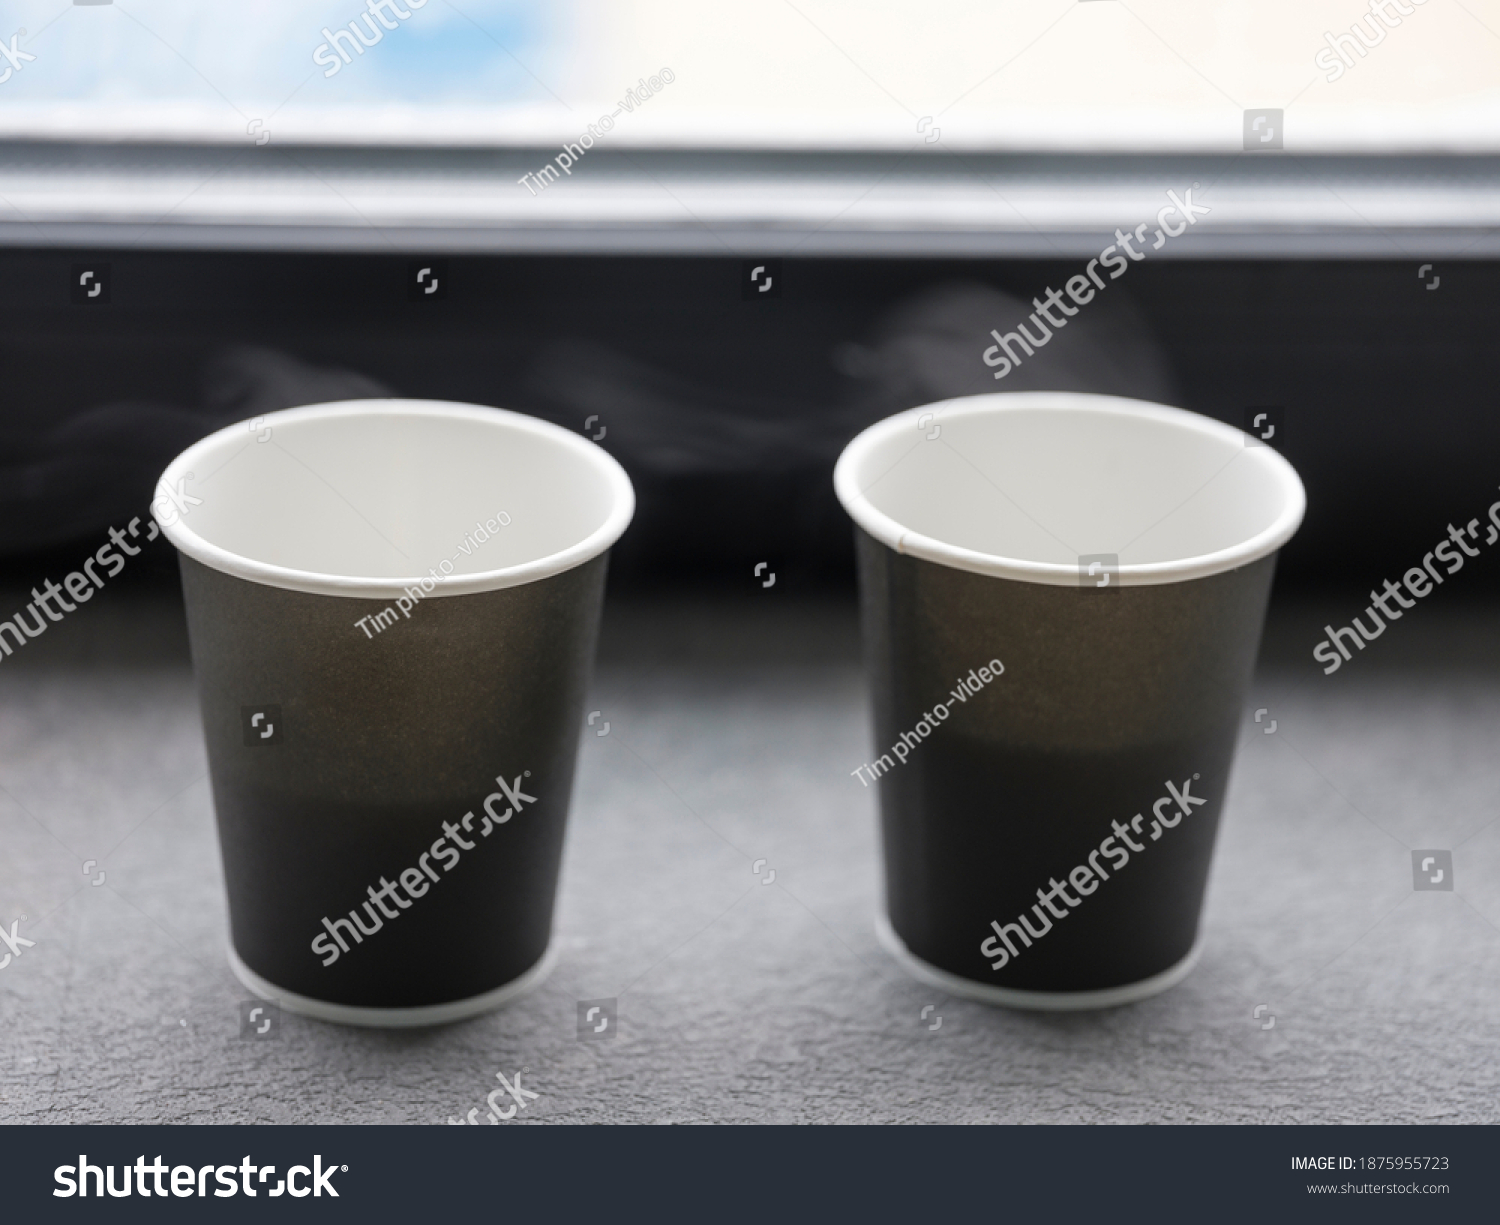 stock-photo-two-disposable-paper-cups-on